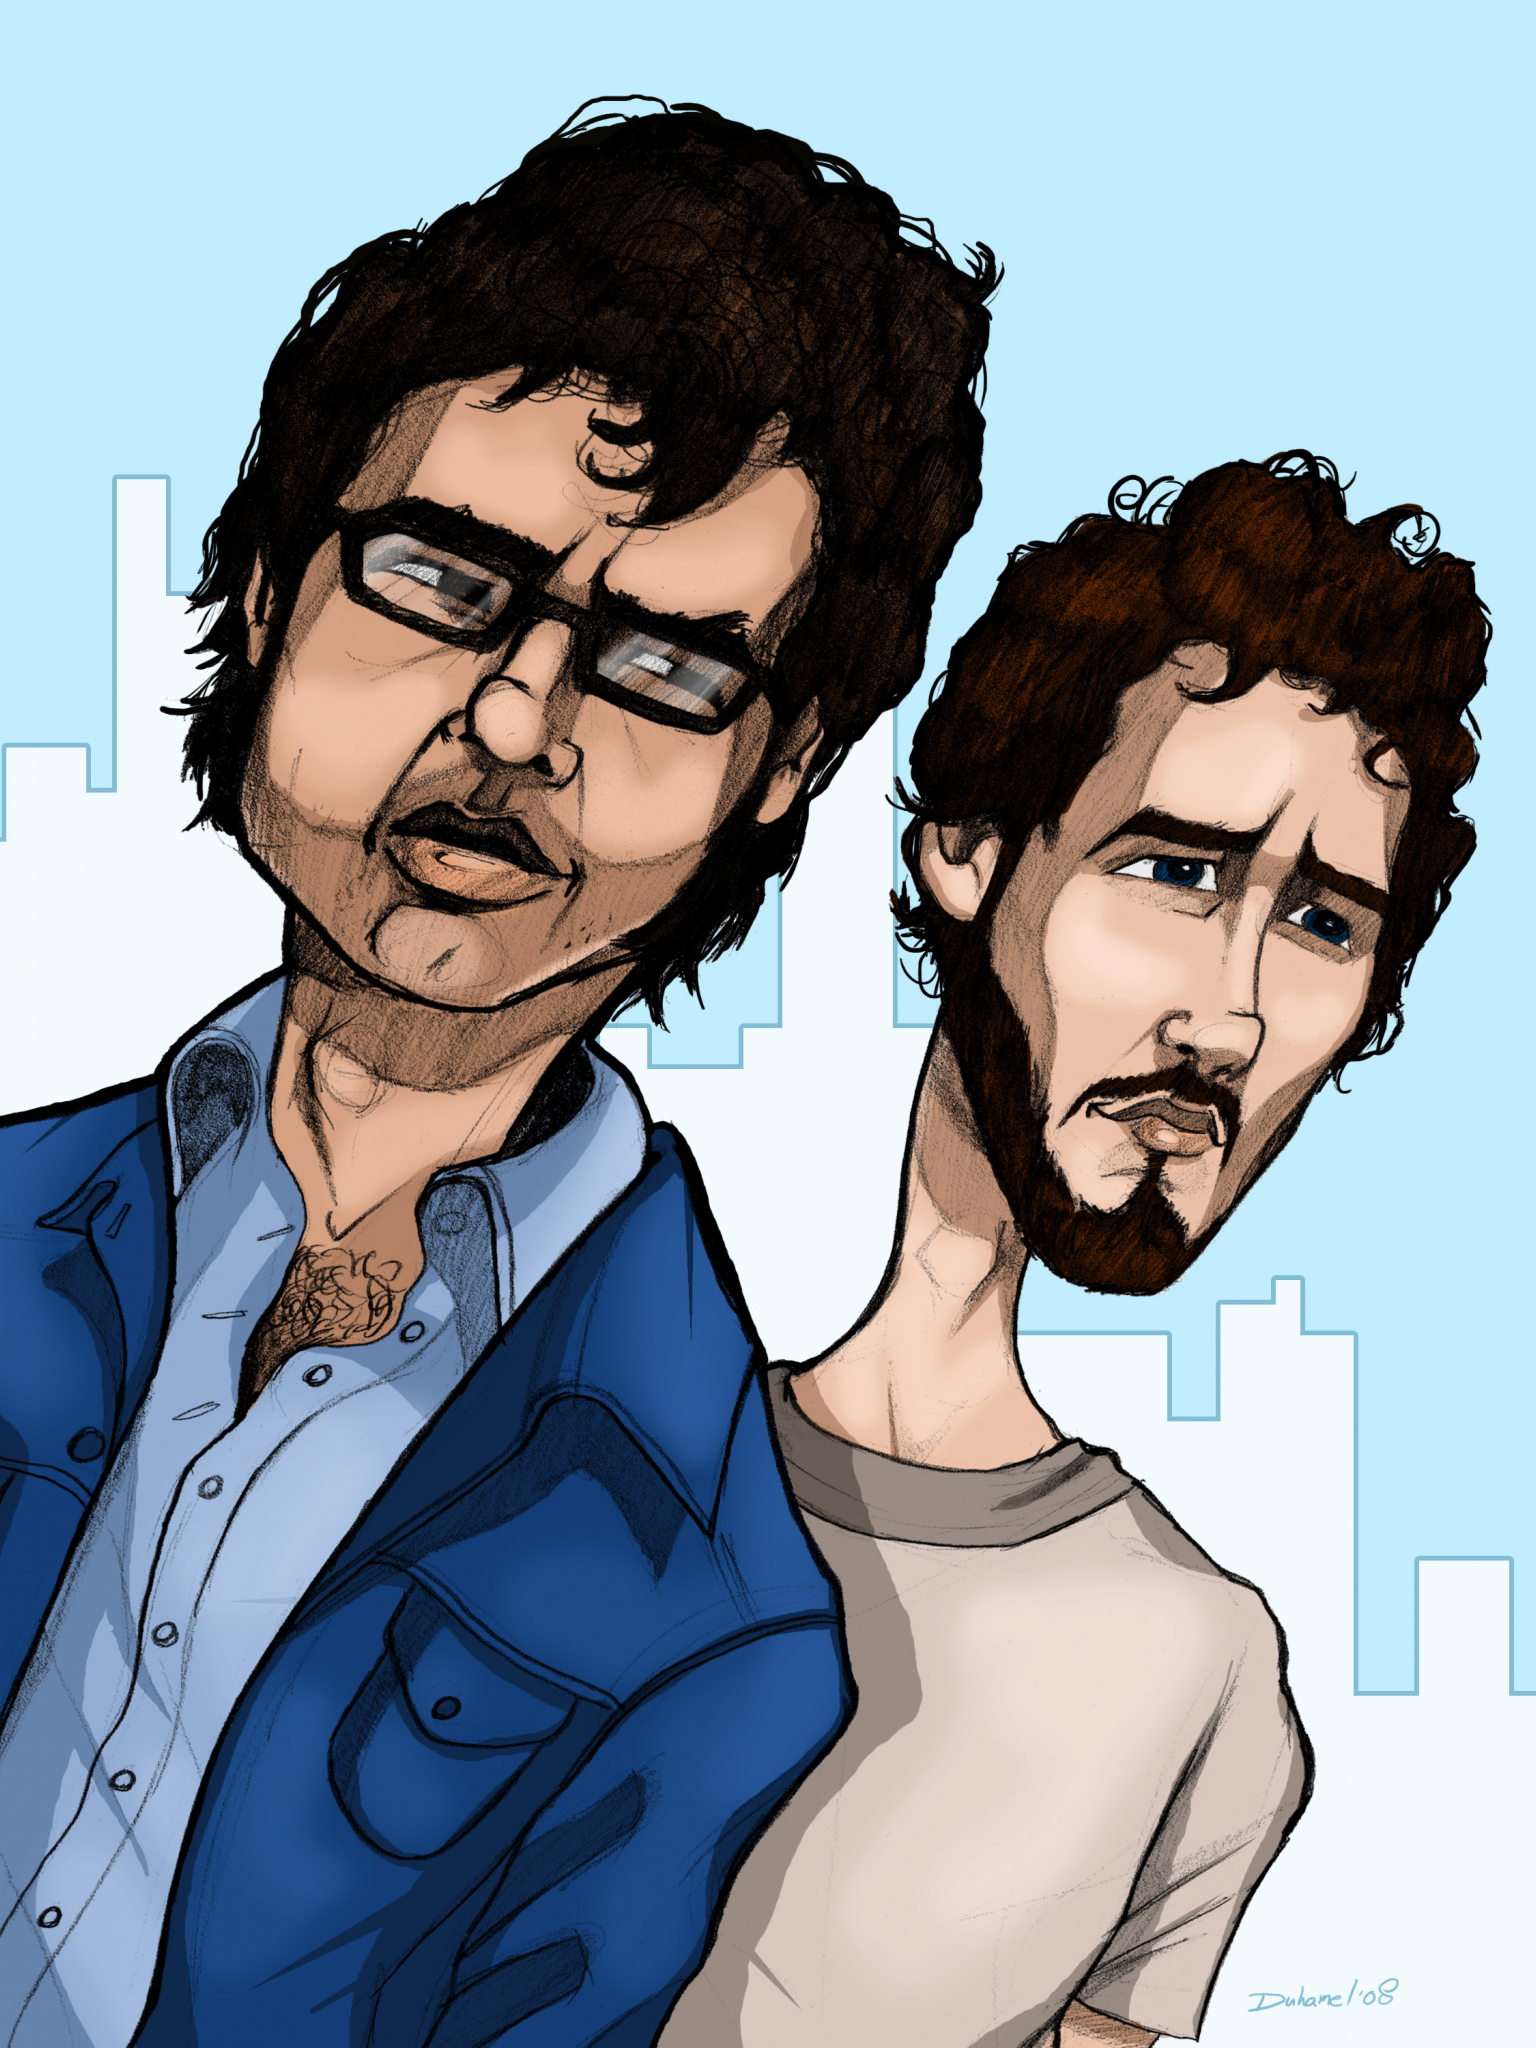 Free Download Flight Of The Conchords Qma0 2400x3000 For Your